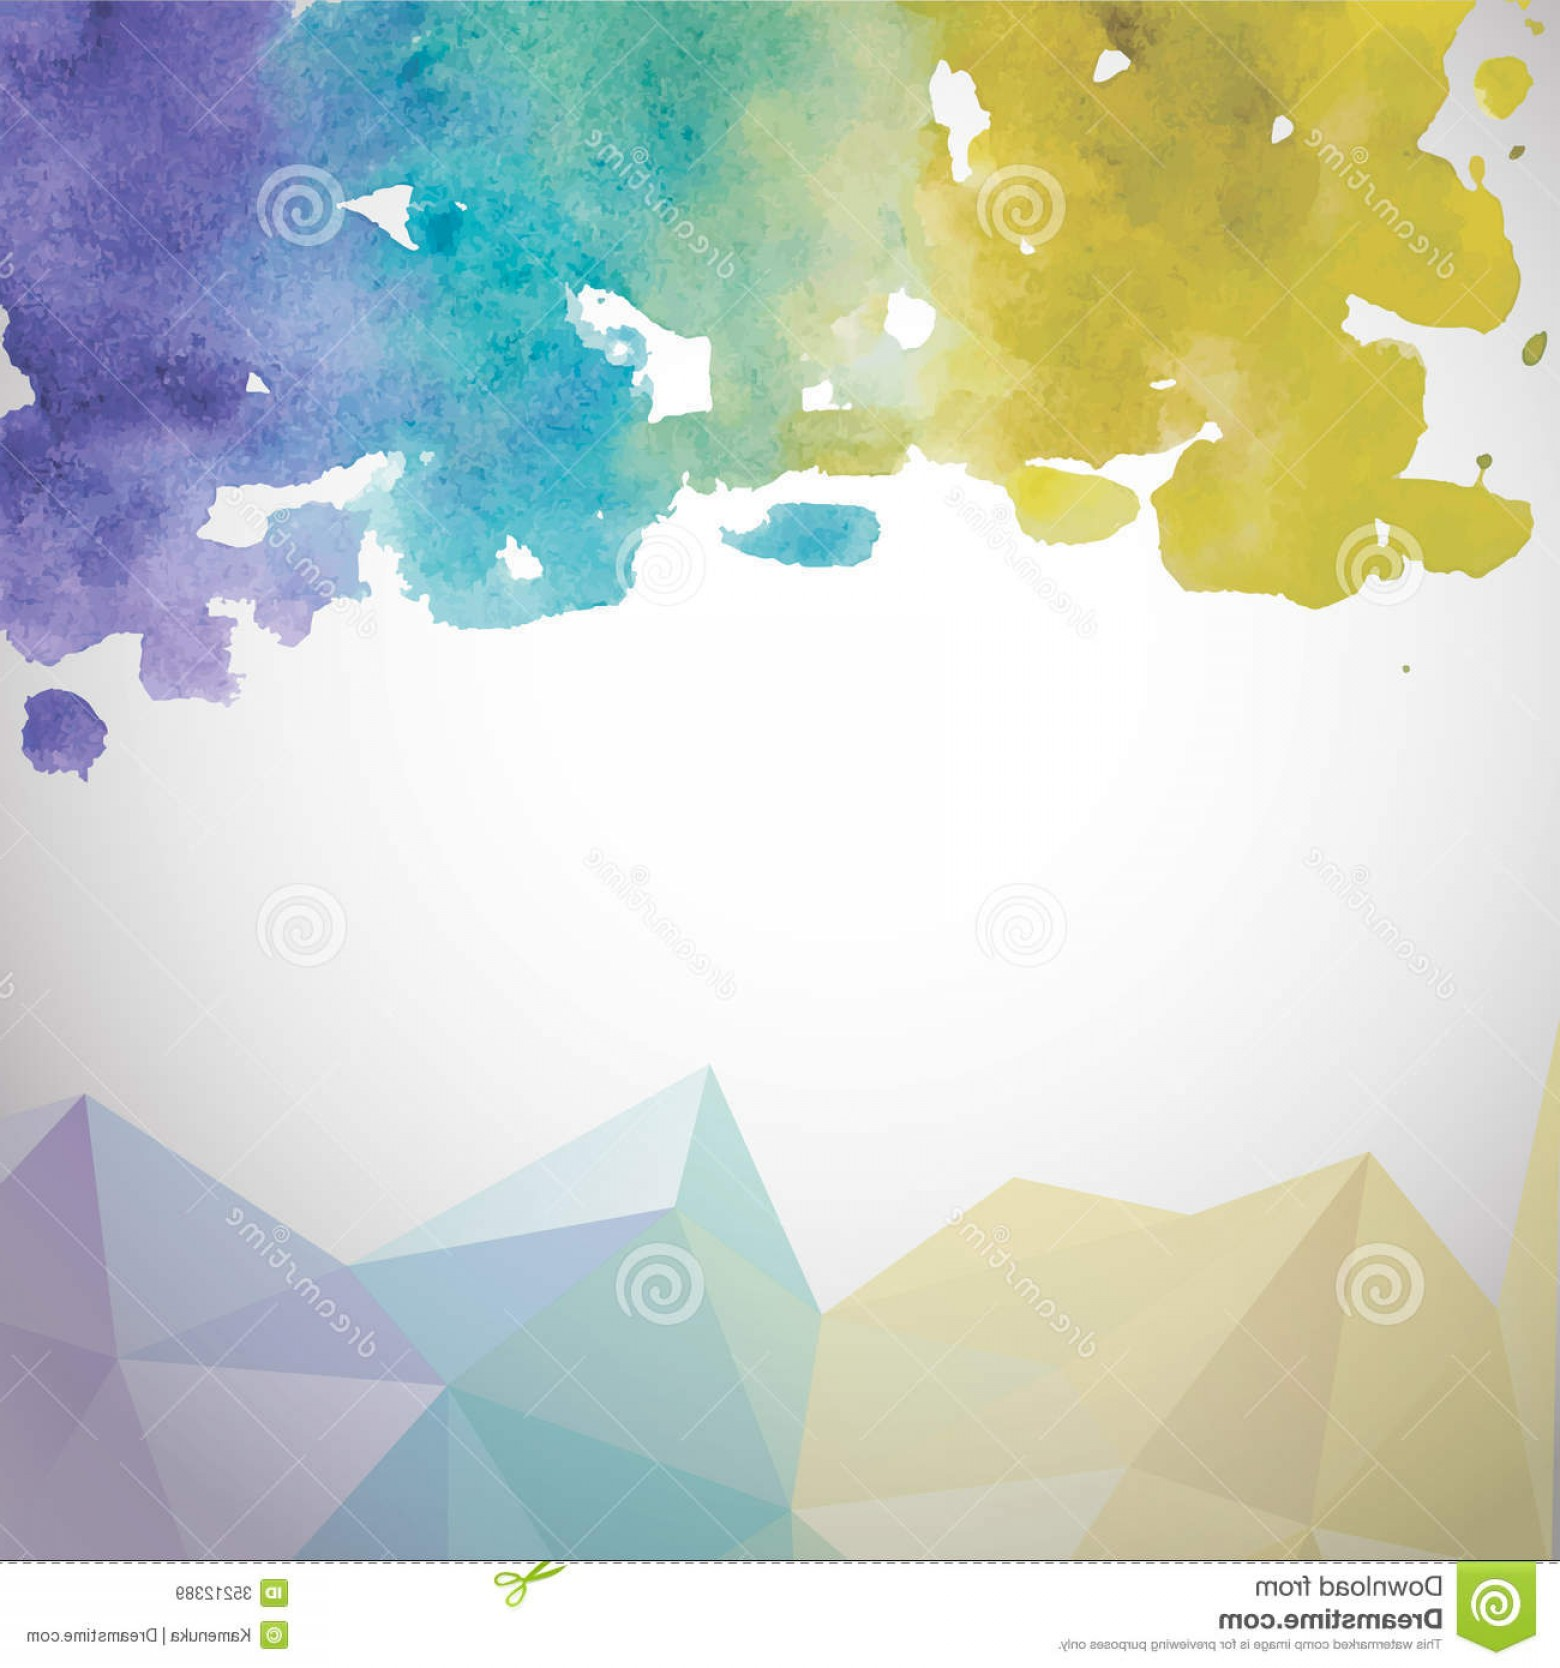 Watercolor Vector Background Free: Royalty Free Stock Images Abstract Hand Drawn Watercolor Background Vector Template Eps Illustration Image